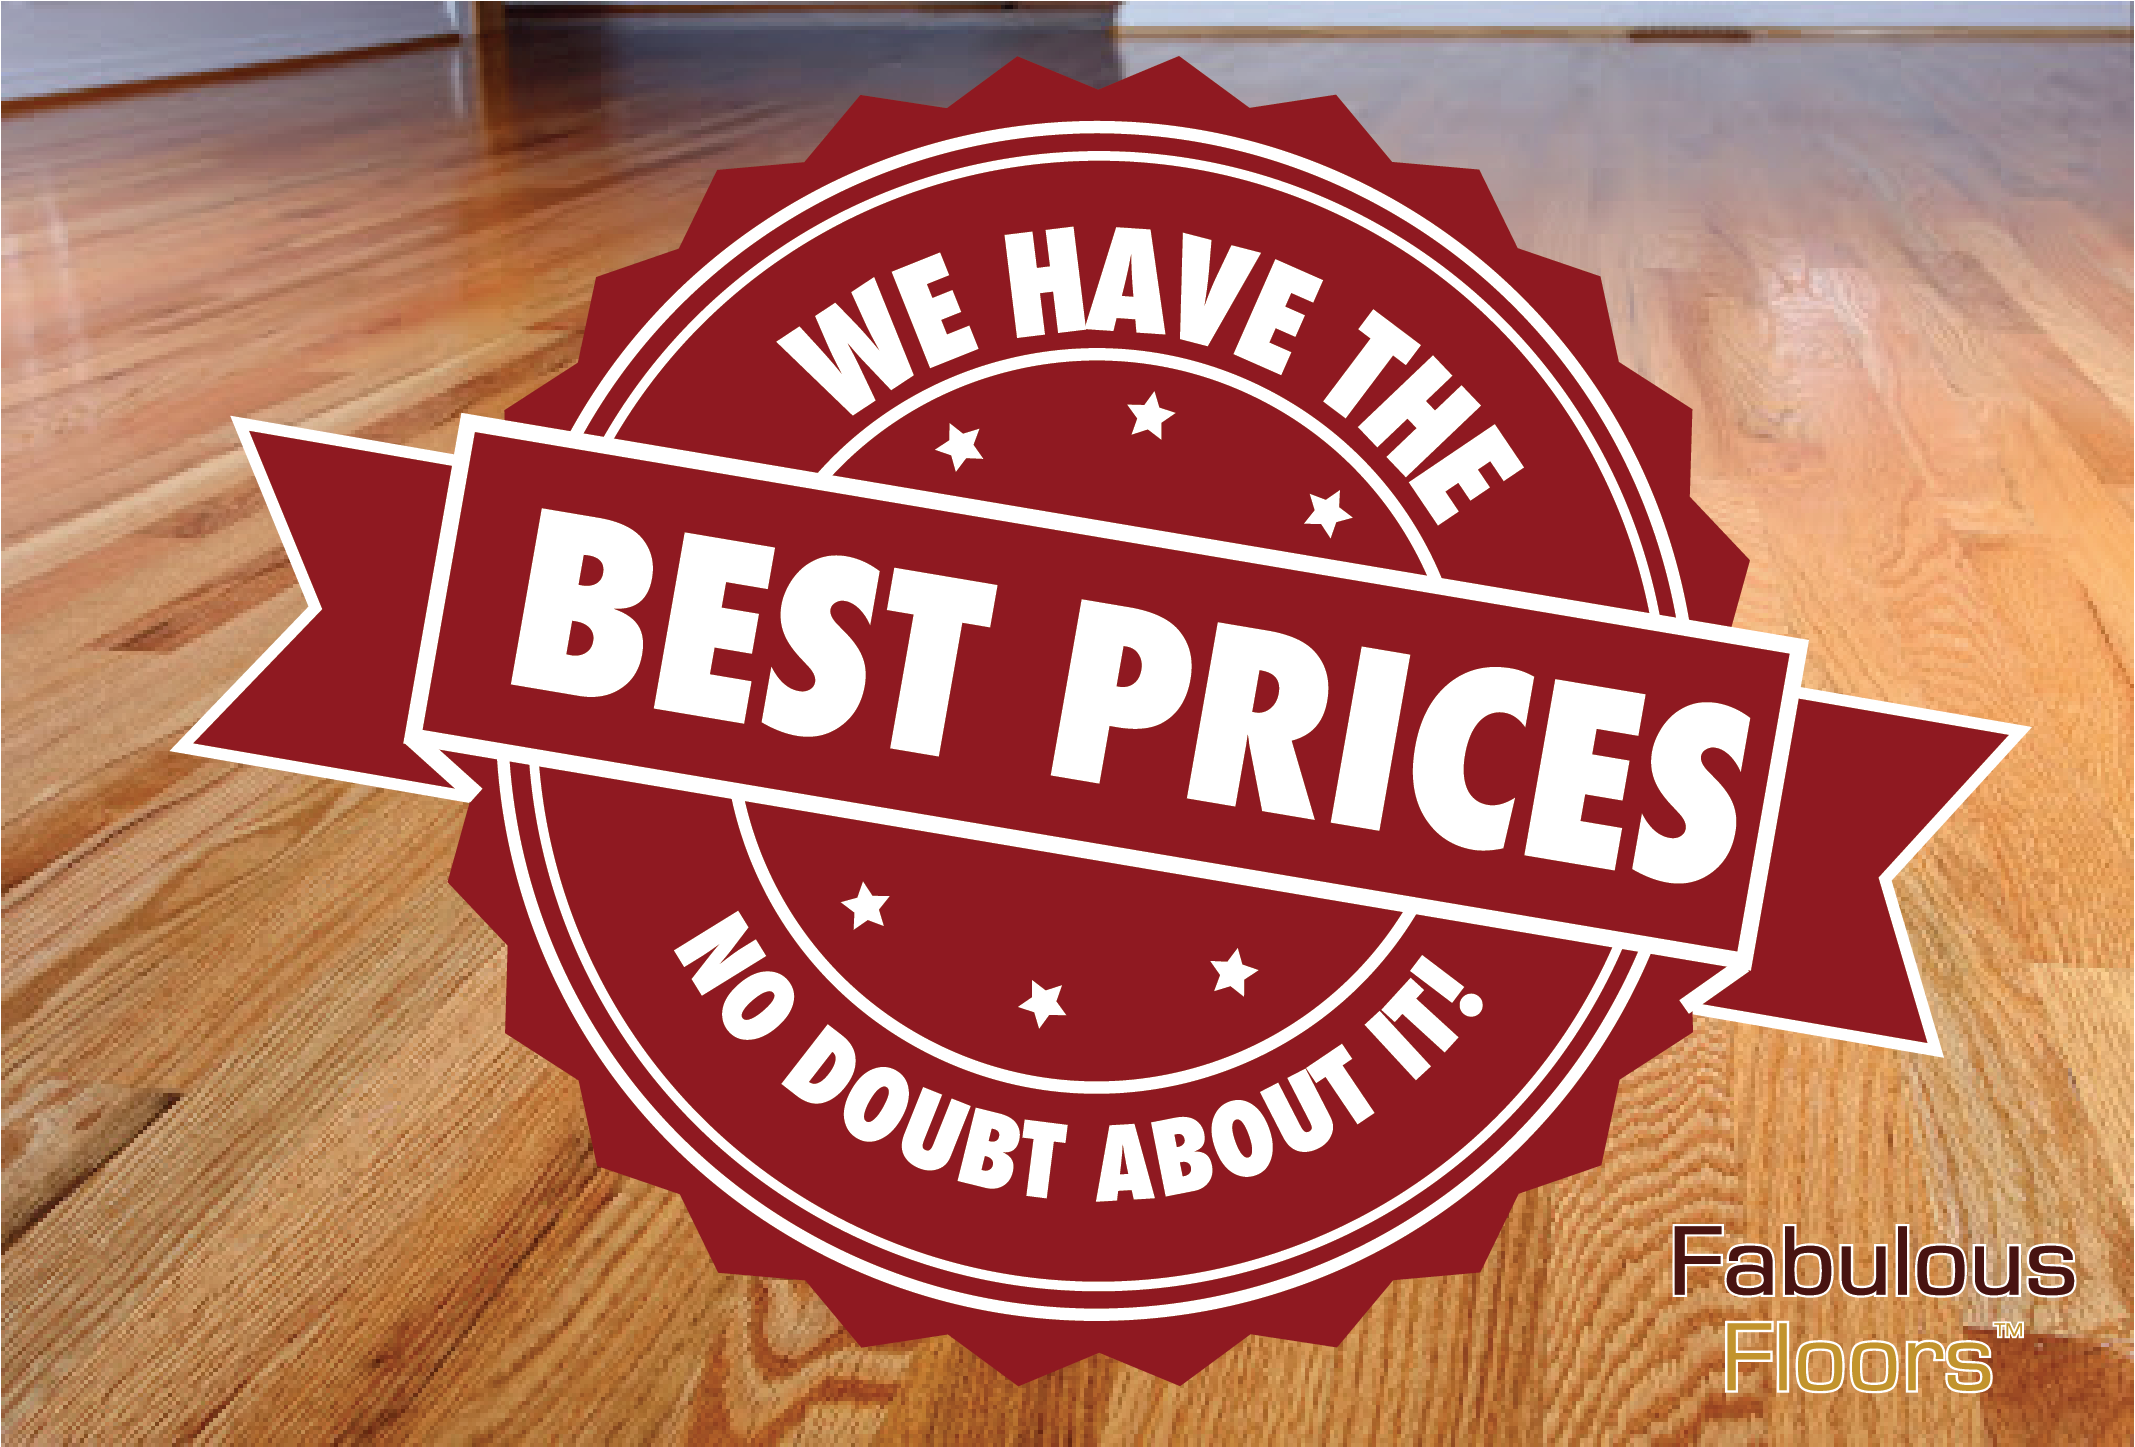 The best prices around, no doubt about it